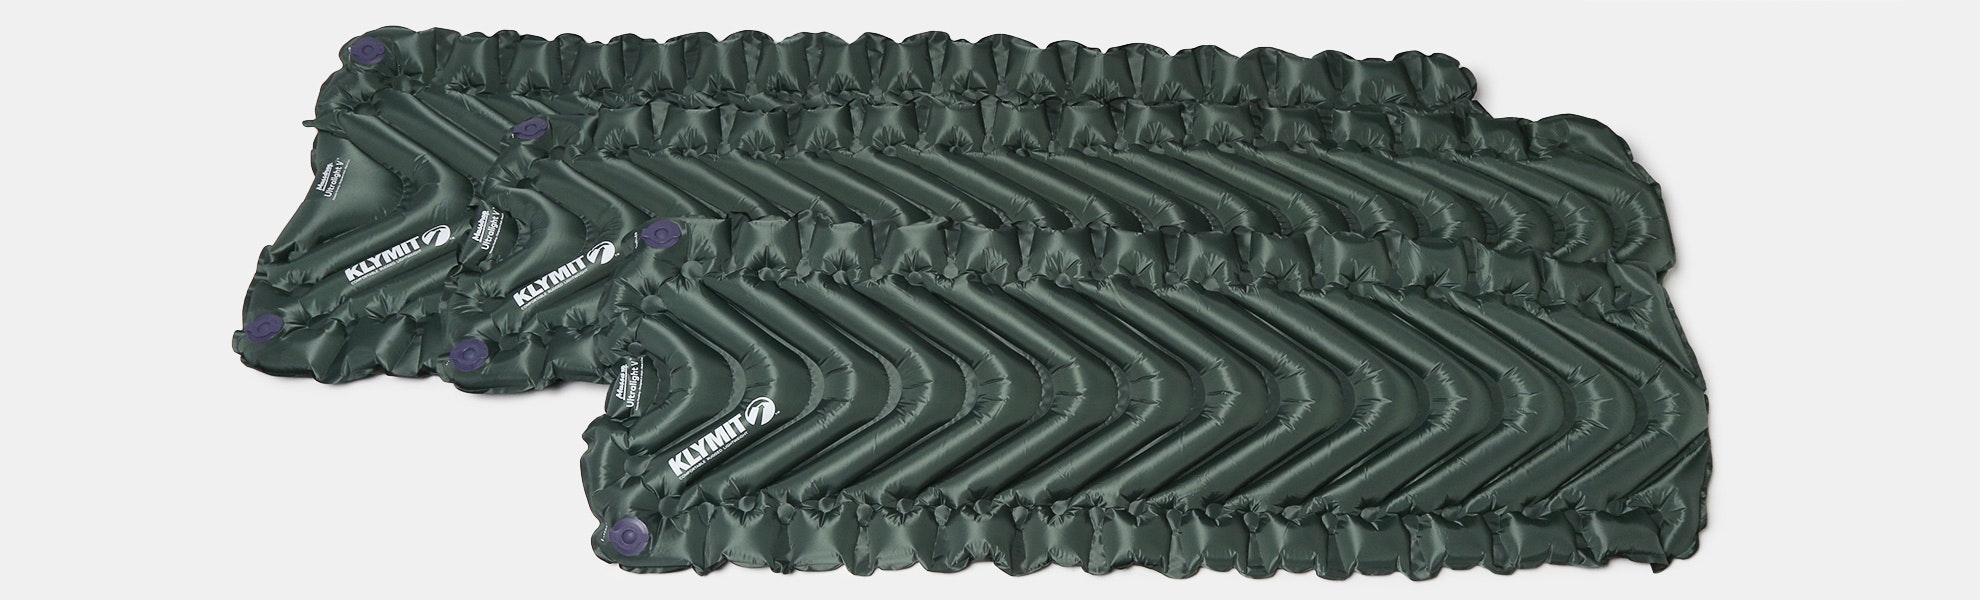 Massdrop x Klymit Ultralight V Sleeping Pad